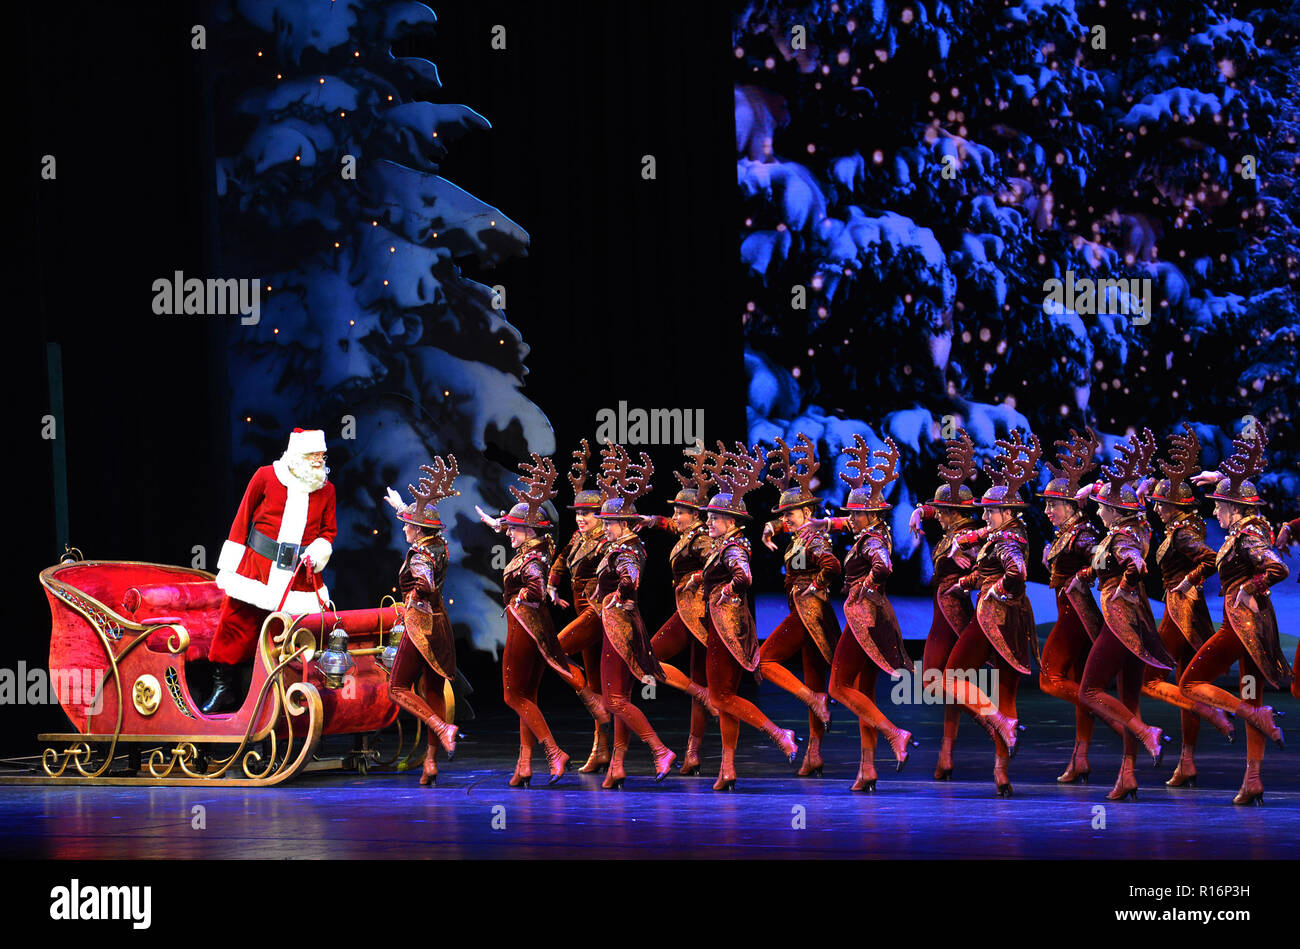 Christmas Ny 2019.New York Nov 9 1st Jan 2019 The Rockettes Perform